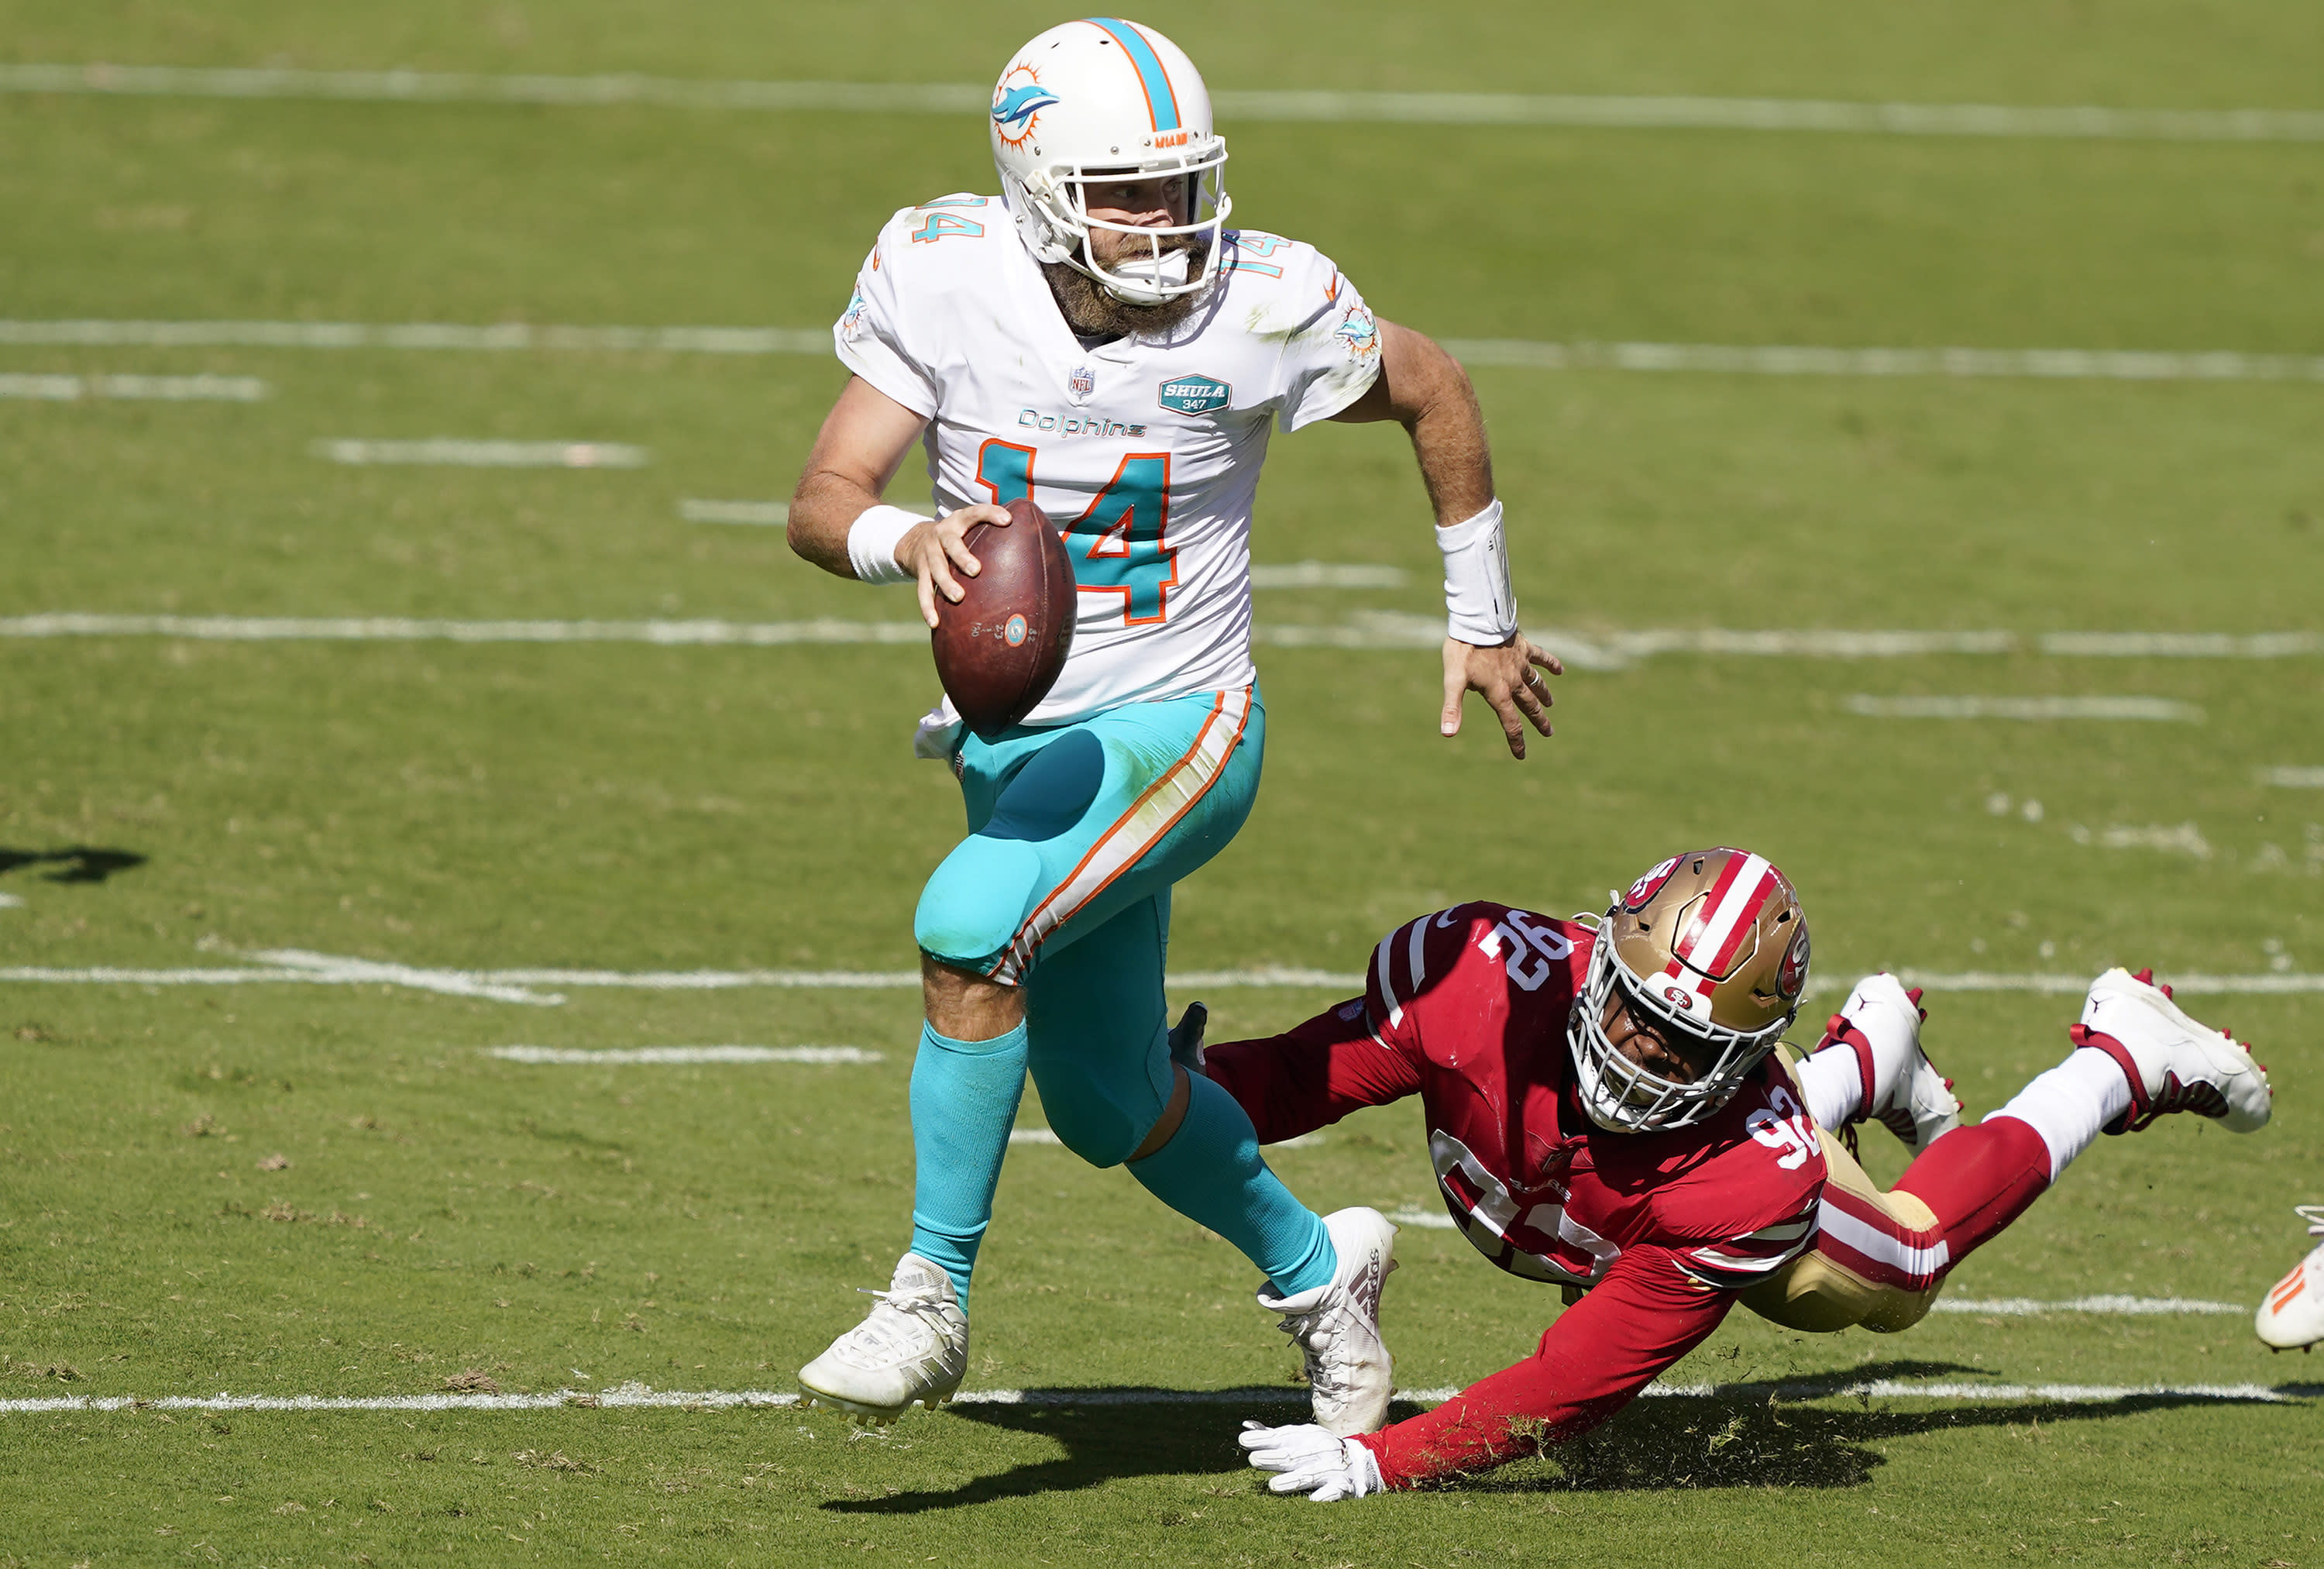 Omar Kelly: Dolphins find their groove in dominant win over 49ers